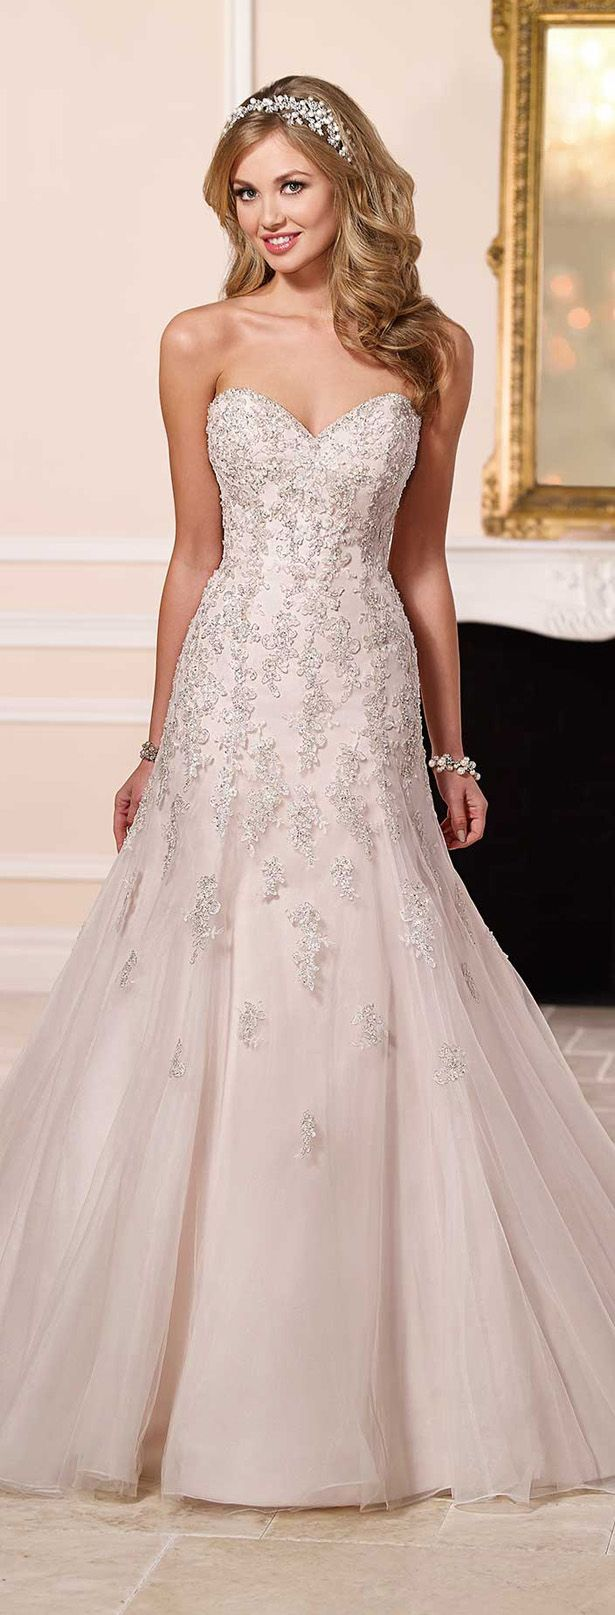 382 best images about dream day dress on pinterest mark zunino stella york spring 2016 bridal collection ombrellifo Choice Image